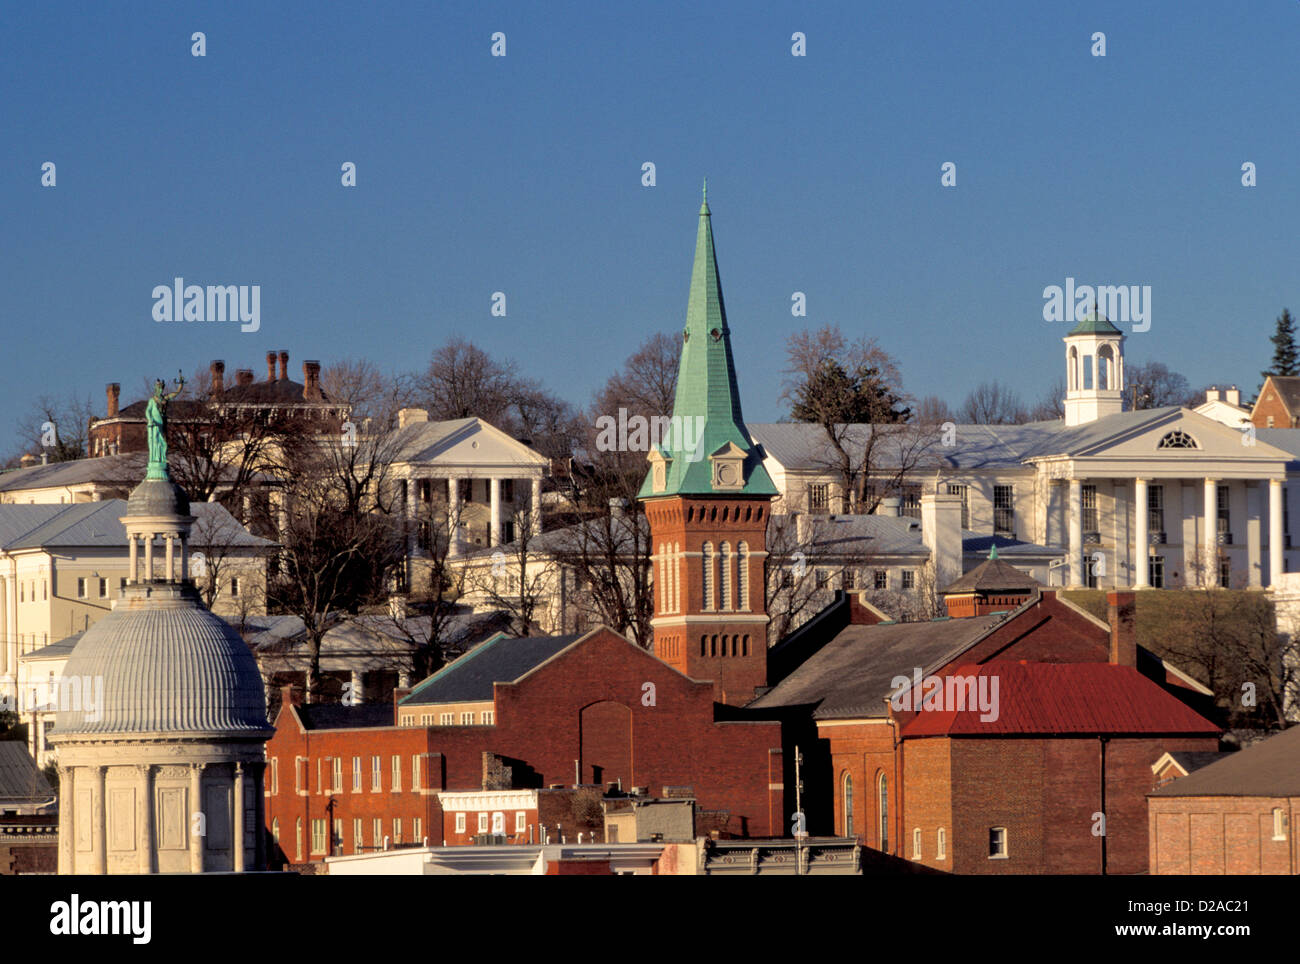 Virginia, Staunton. Skyline With Church Steeple And Government Buildings. - Stock Image